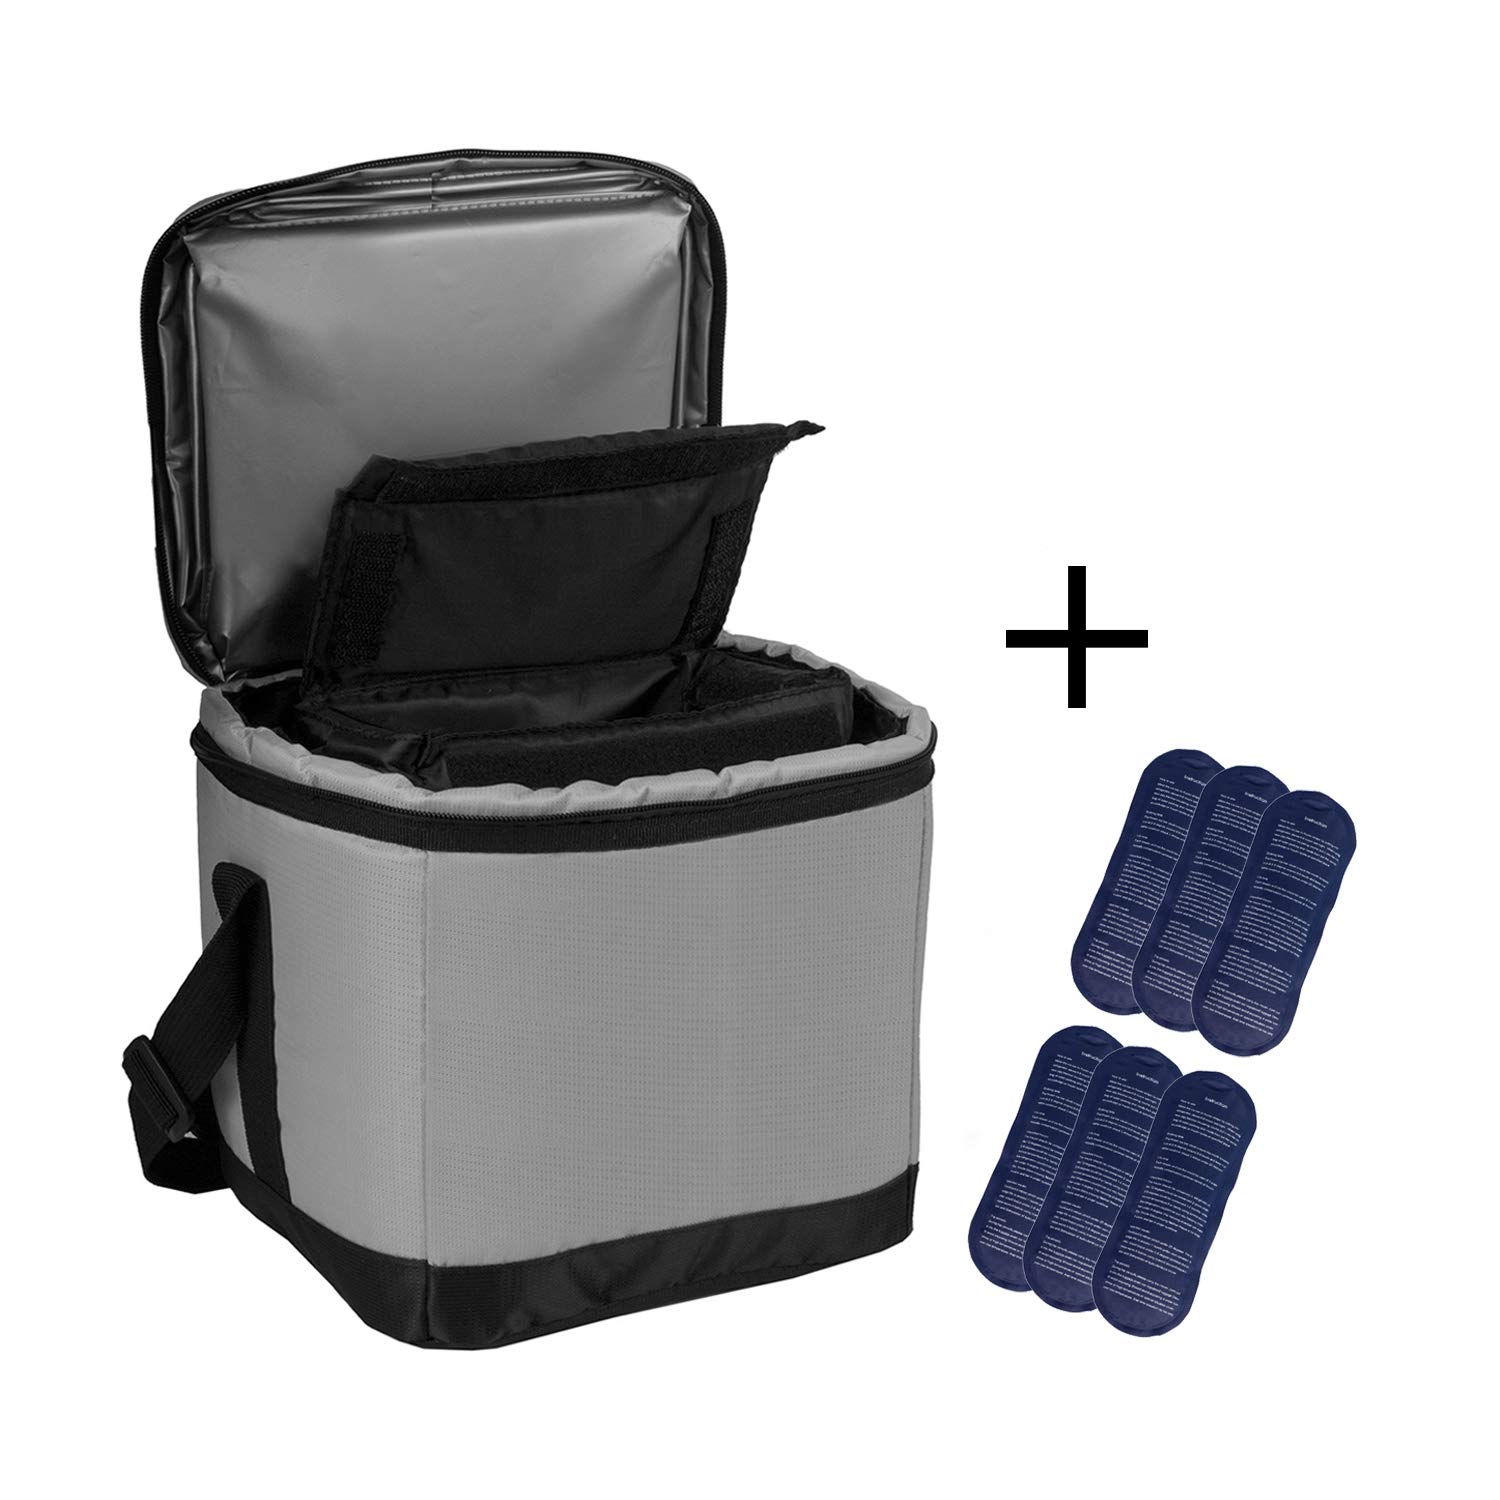 ALLCAMP Large Thicken Cooler Bag Diabetic Organizer Multifunctional Medical Bag Cooler Crossbody Bag with a Detachable Bag and 6 Ice Packs Gray